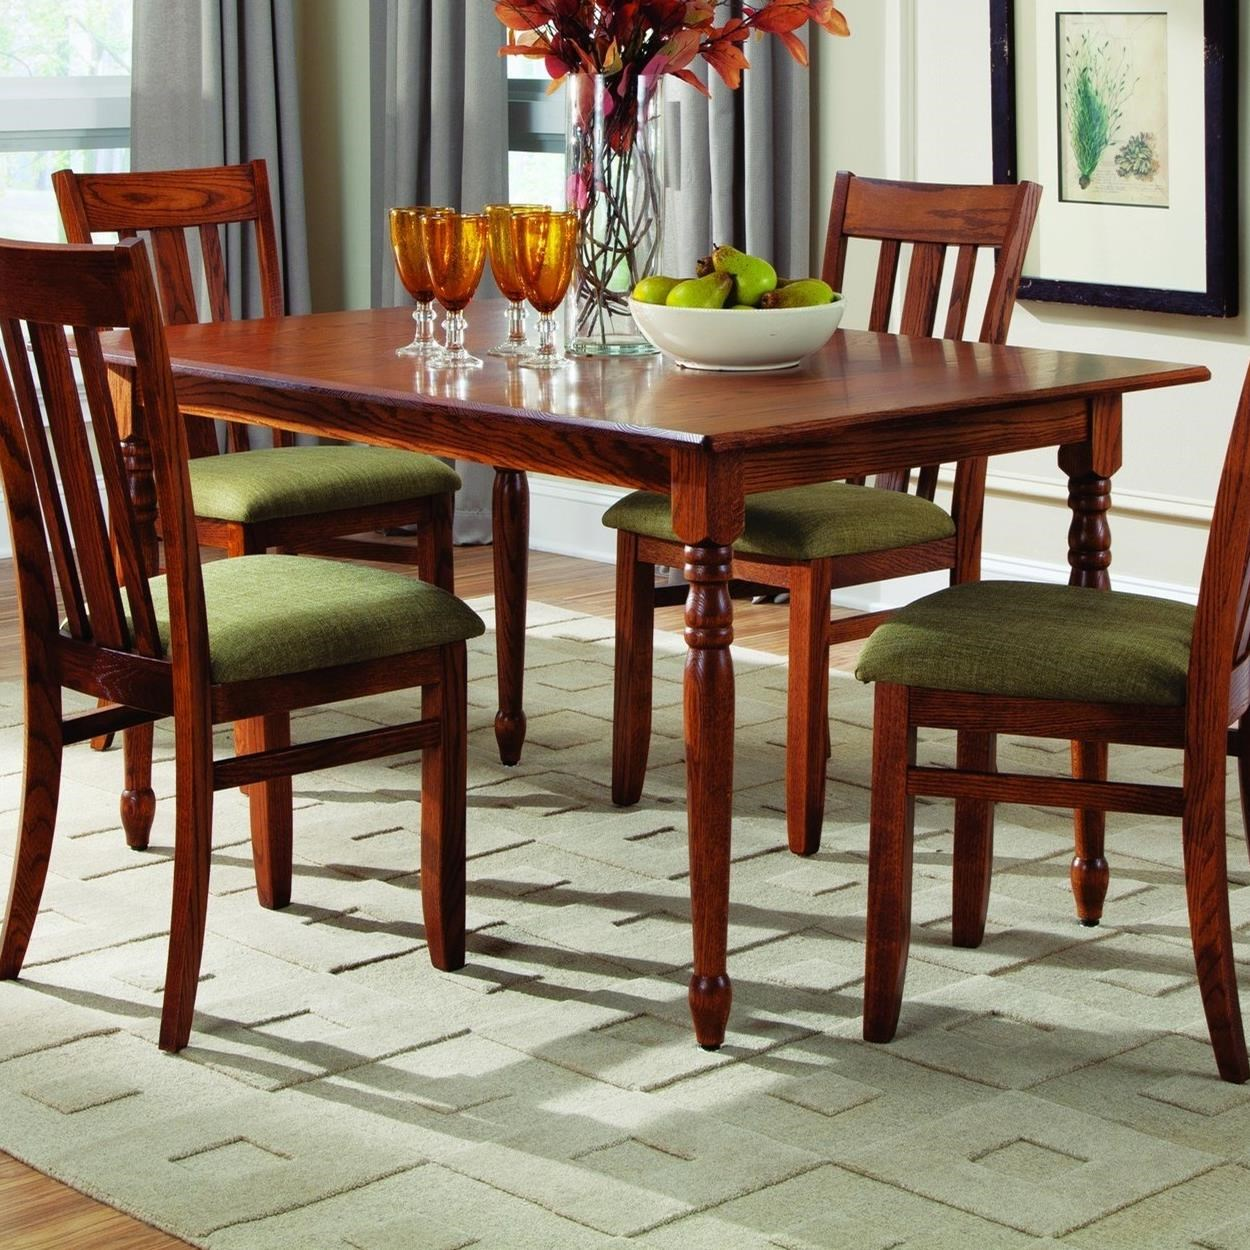 """Lifestyles Lite Dining 36"""" x 58"""" Table - Laminate Top by Palettes by Winesburg at Dinette Depot"""